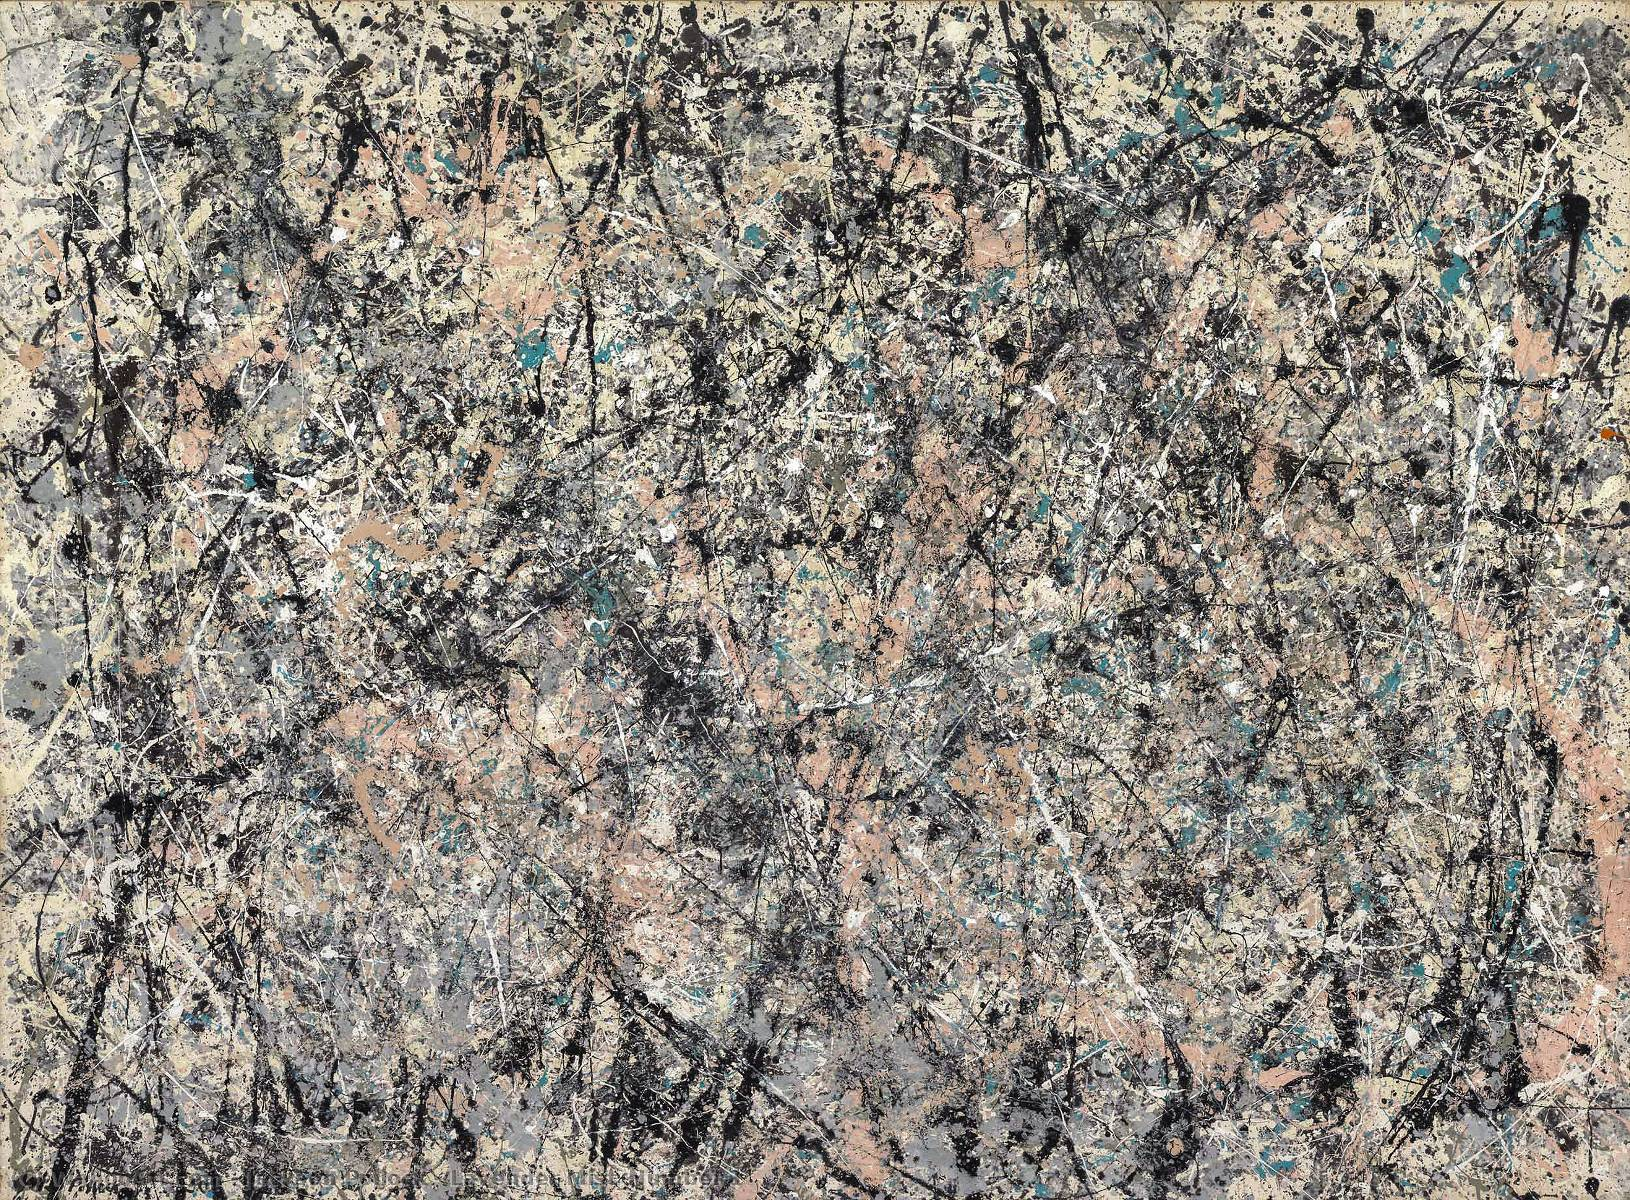 Lavender Mist_Number 1, Oil by Jackson Pollock (1912-1956, United States)